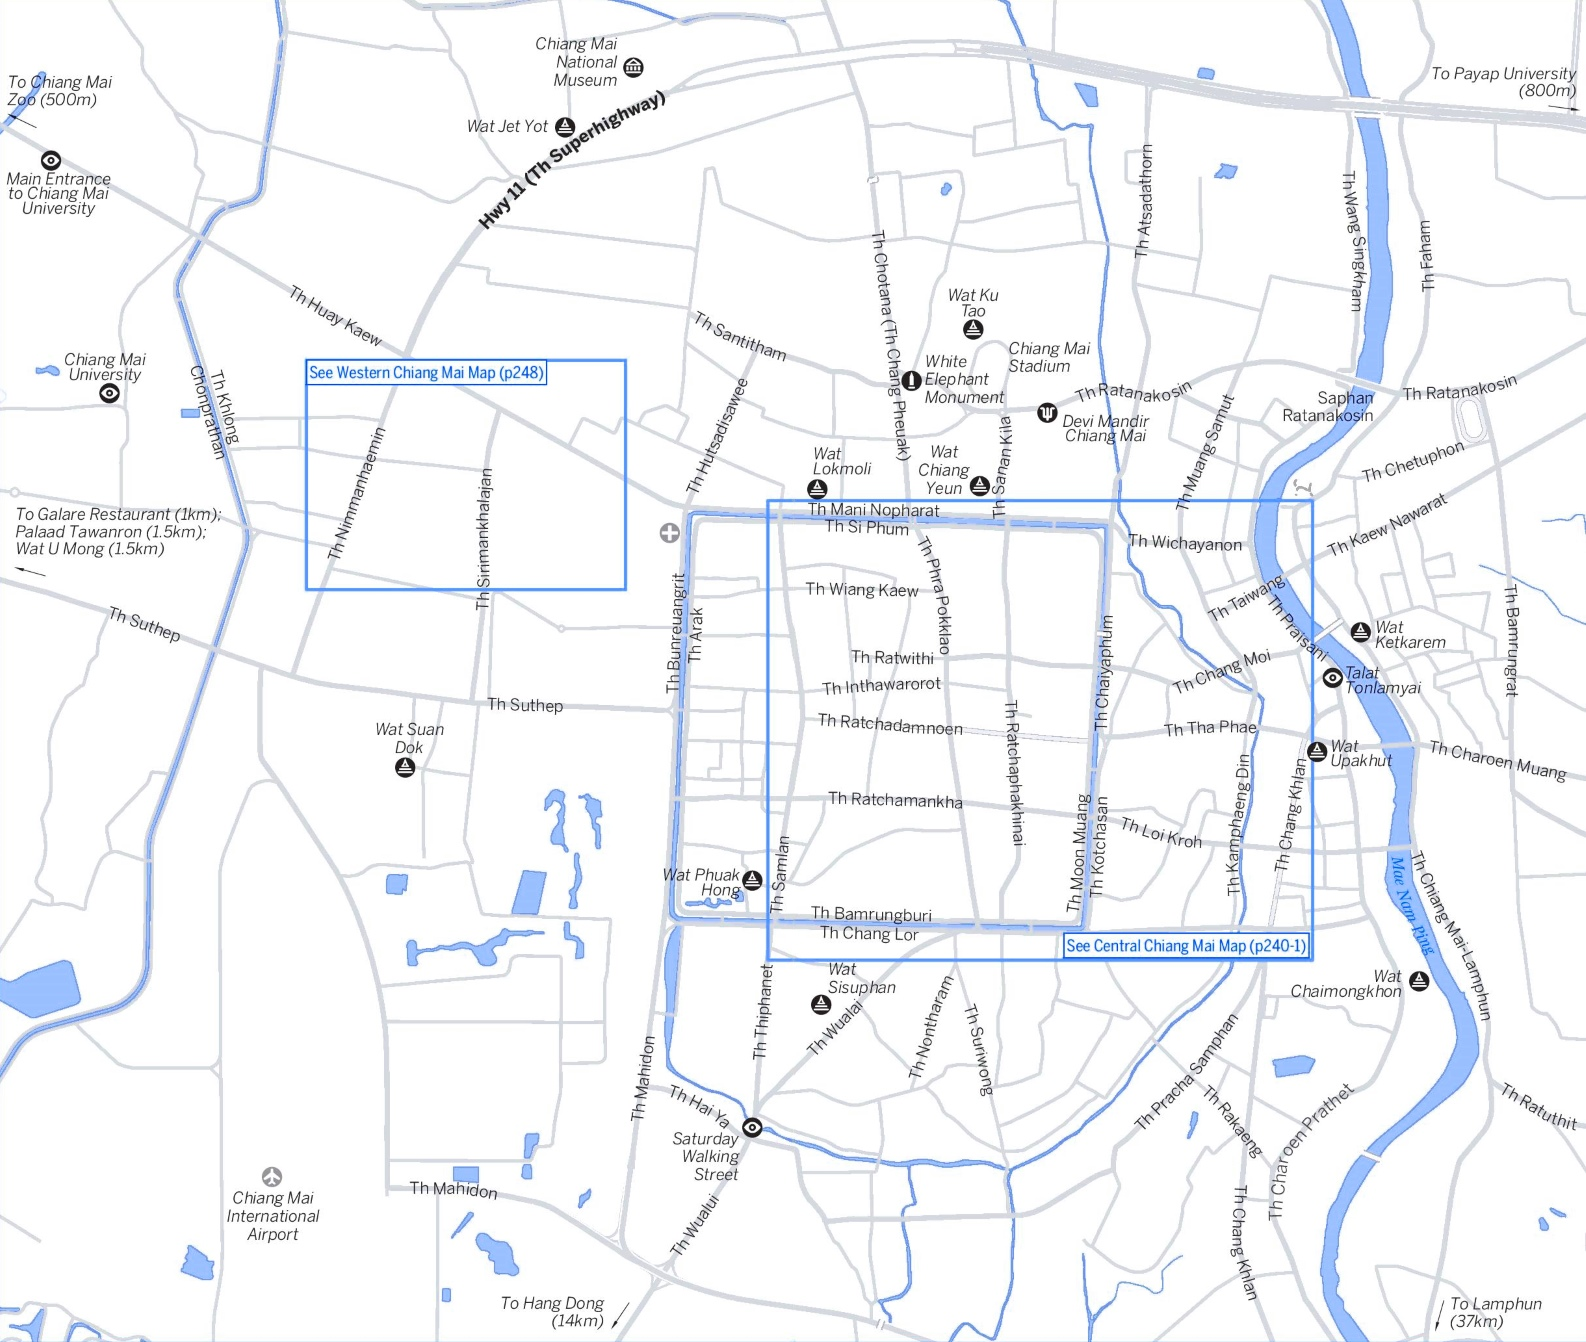 Chiang Mai area map